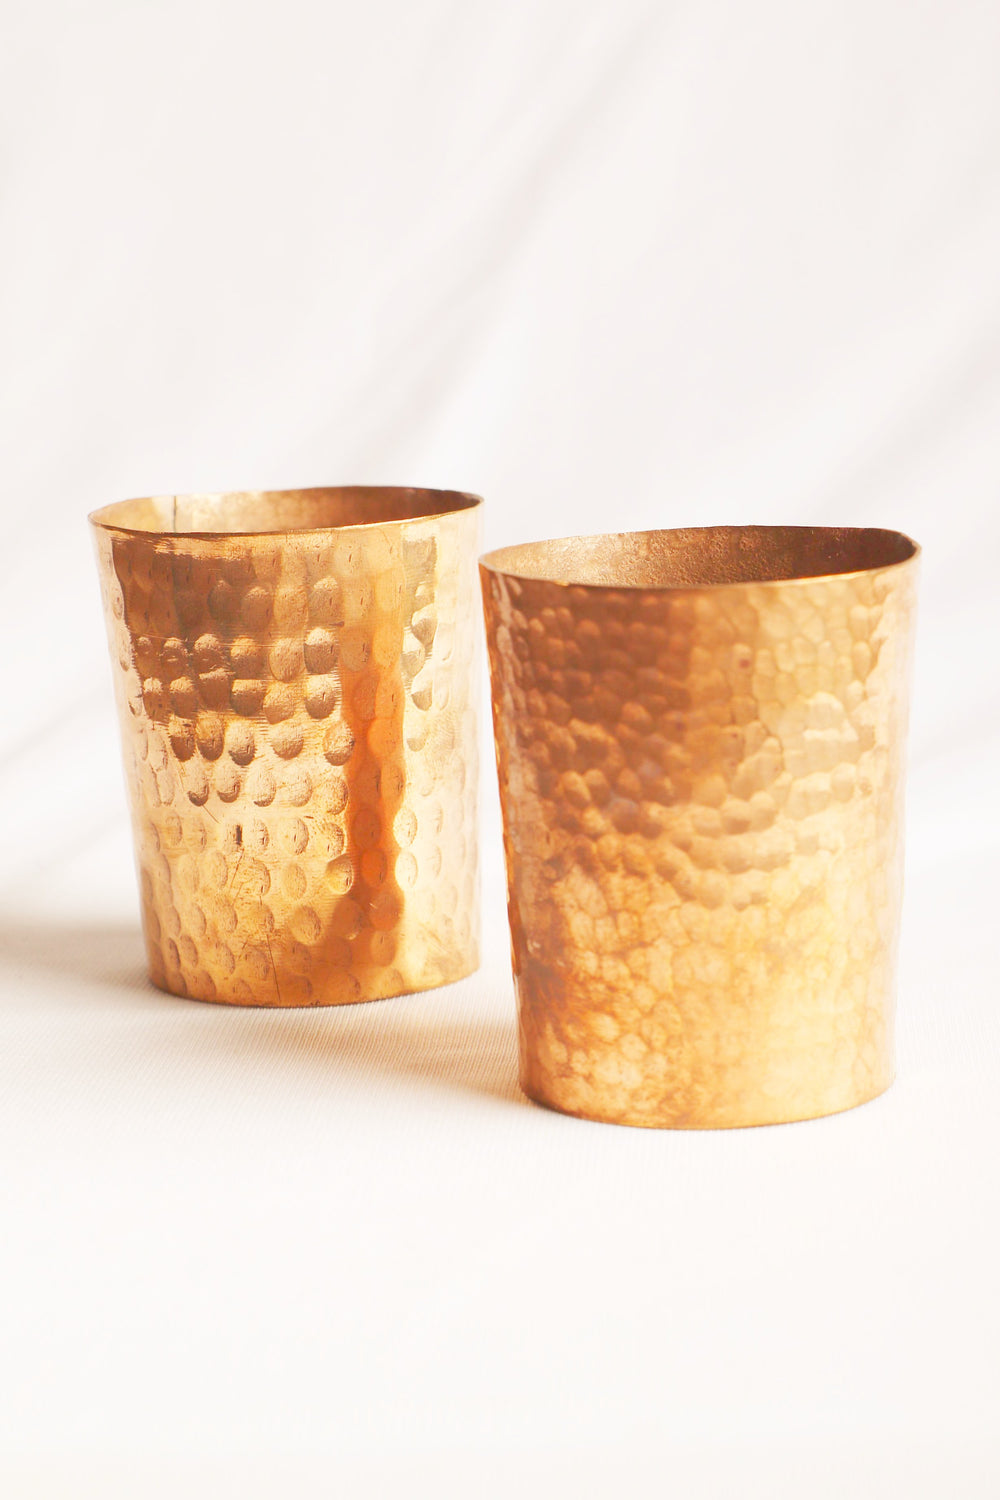 Copper connect series copper bar shot glass (set of 2)